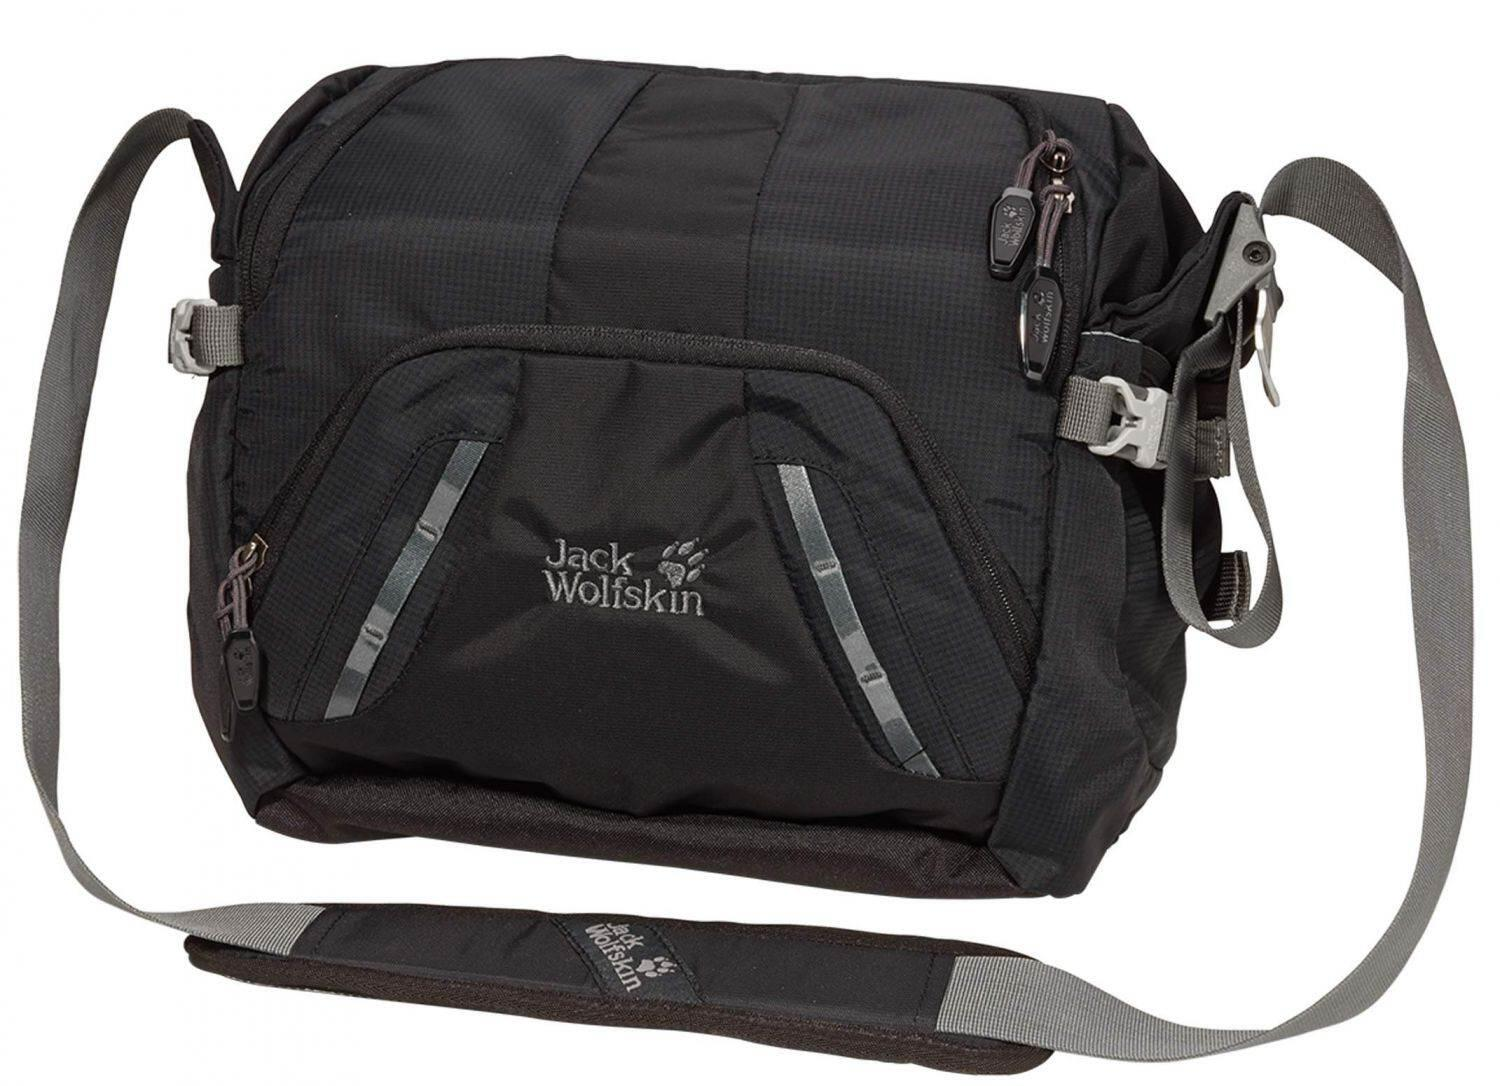 jack-wolfskin-acs-photo-bag-kameratasche-farbe-6000-black-